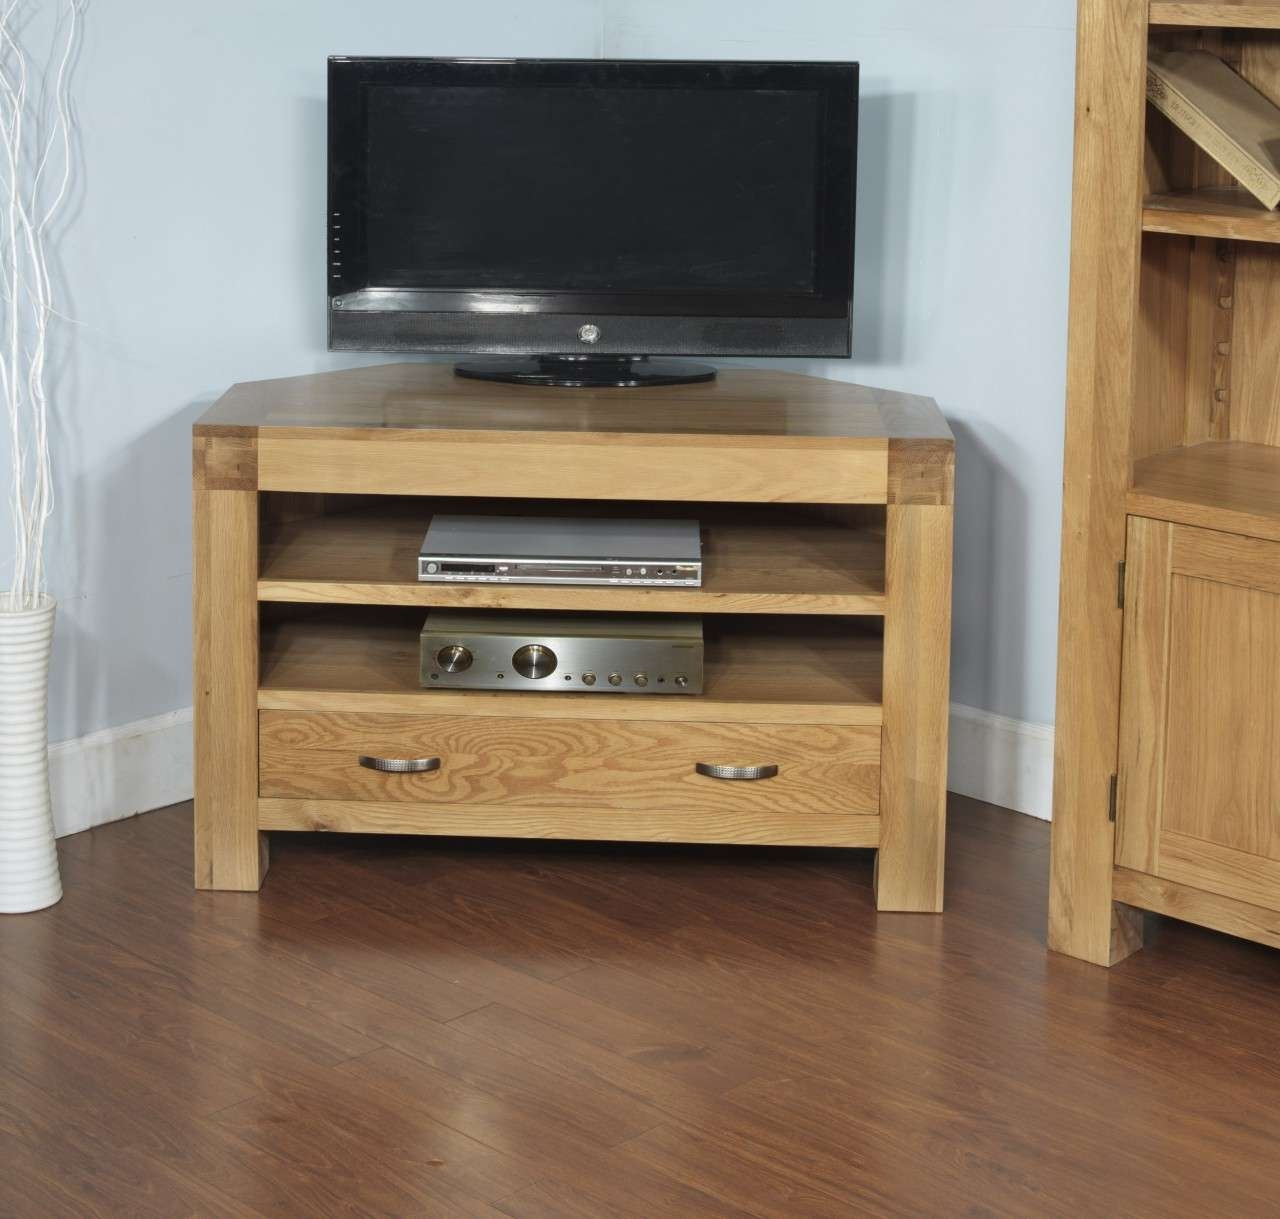 Rivermead Solid Oak Modern Furniture Widescreen Corner Tv Cabinet Throughout Contemporary Oak Tv Stands (View 7 of 15)